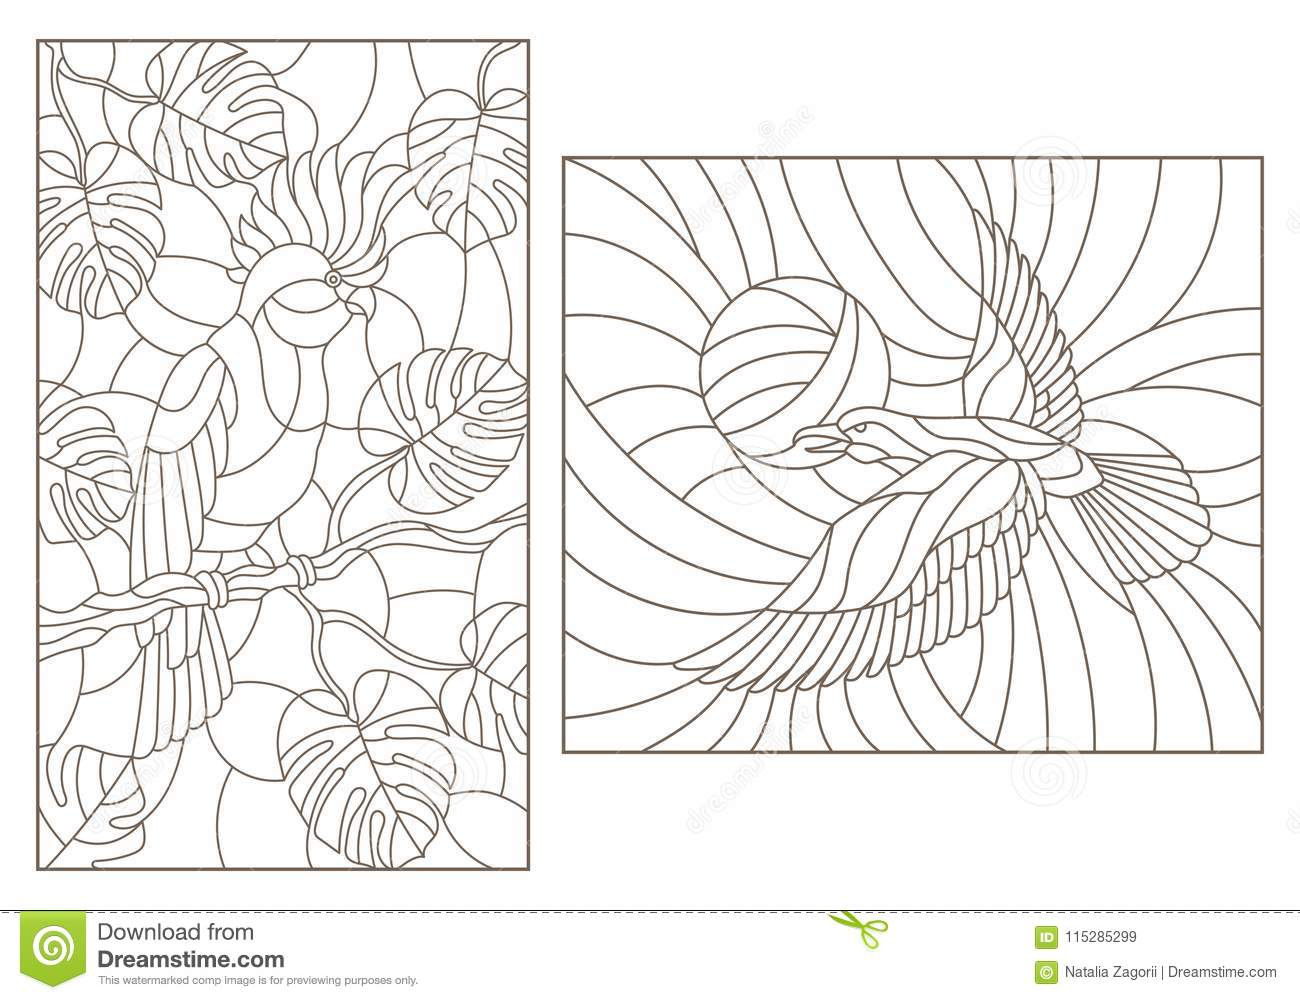 Contour set with illustrations of stained glass with birds, a parrot on the branches of plants and the crows against the sky , da